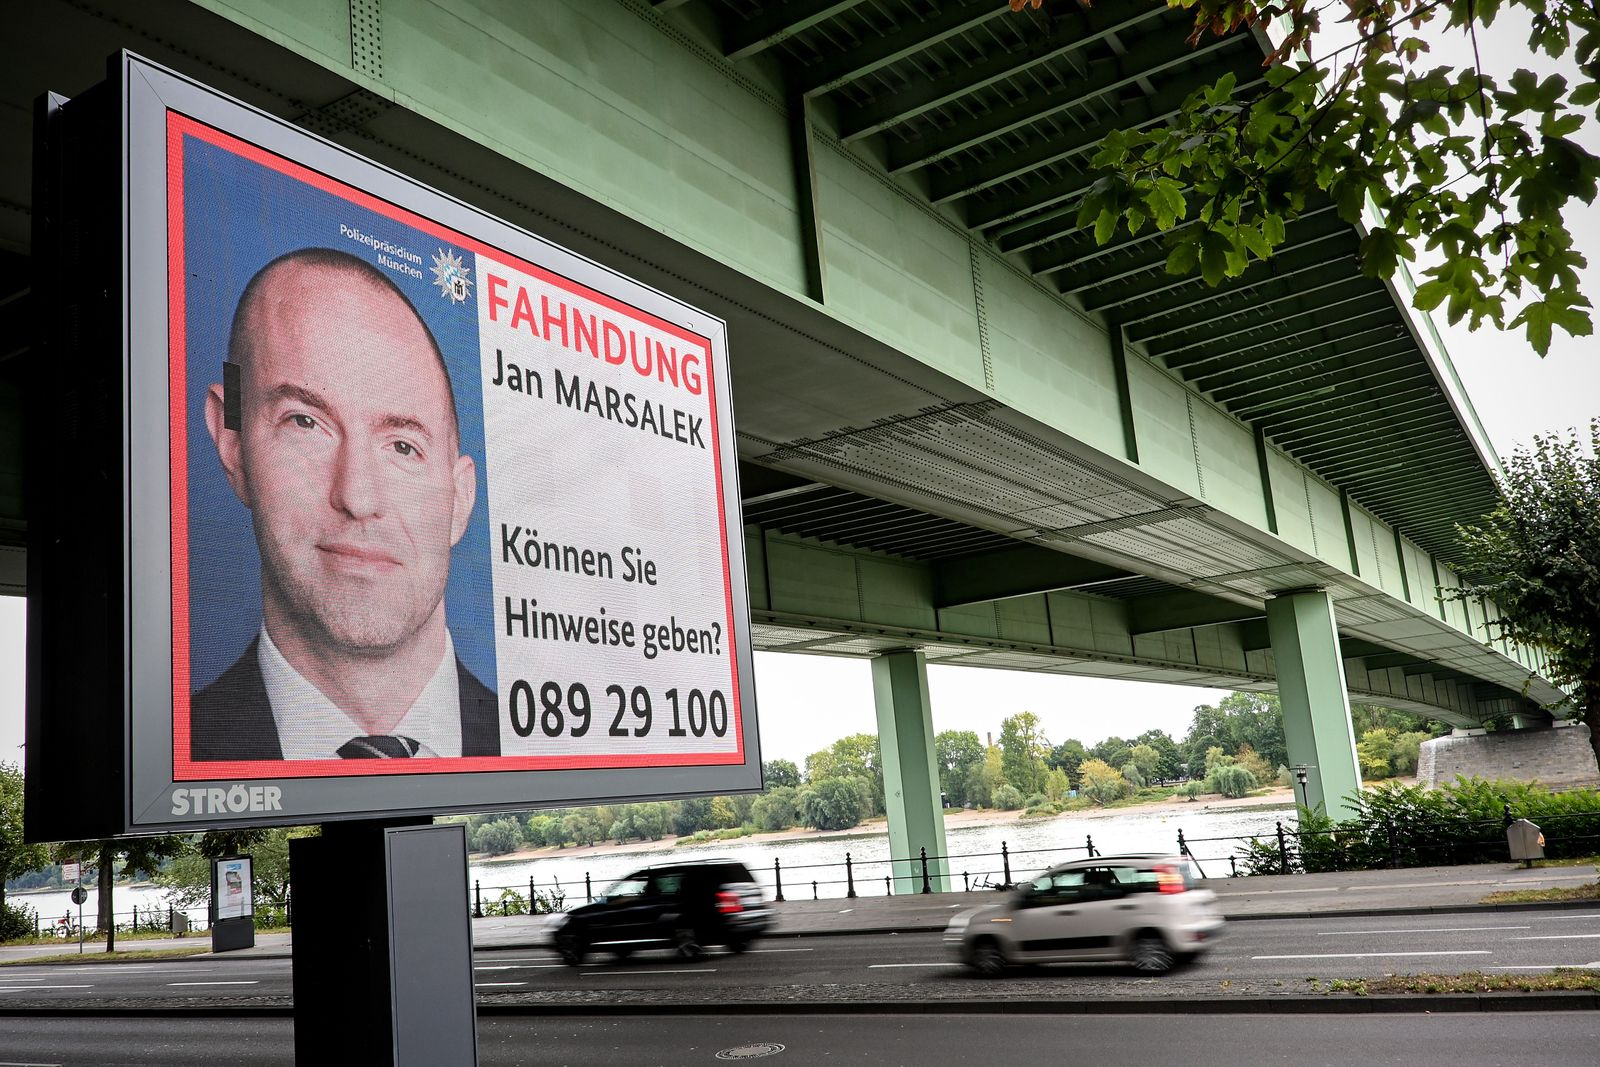 German police advertises wanted poster of Wirecard management member Marsalek, Cologne, Germany - 14 Aug 2020